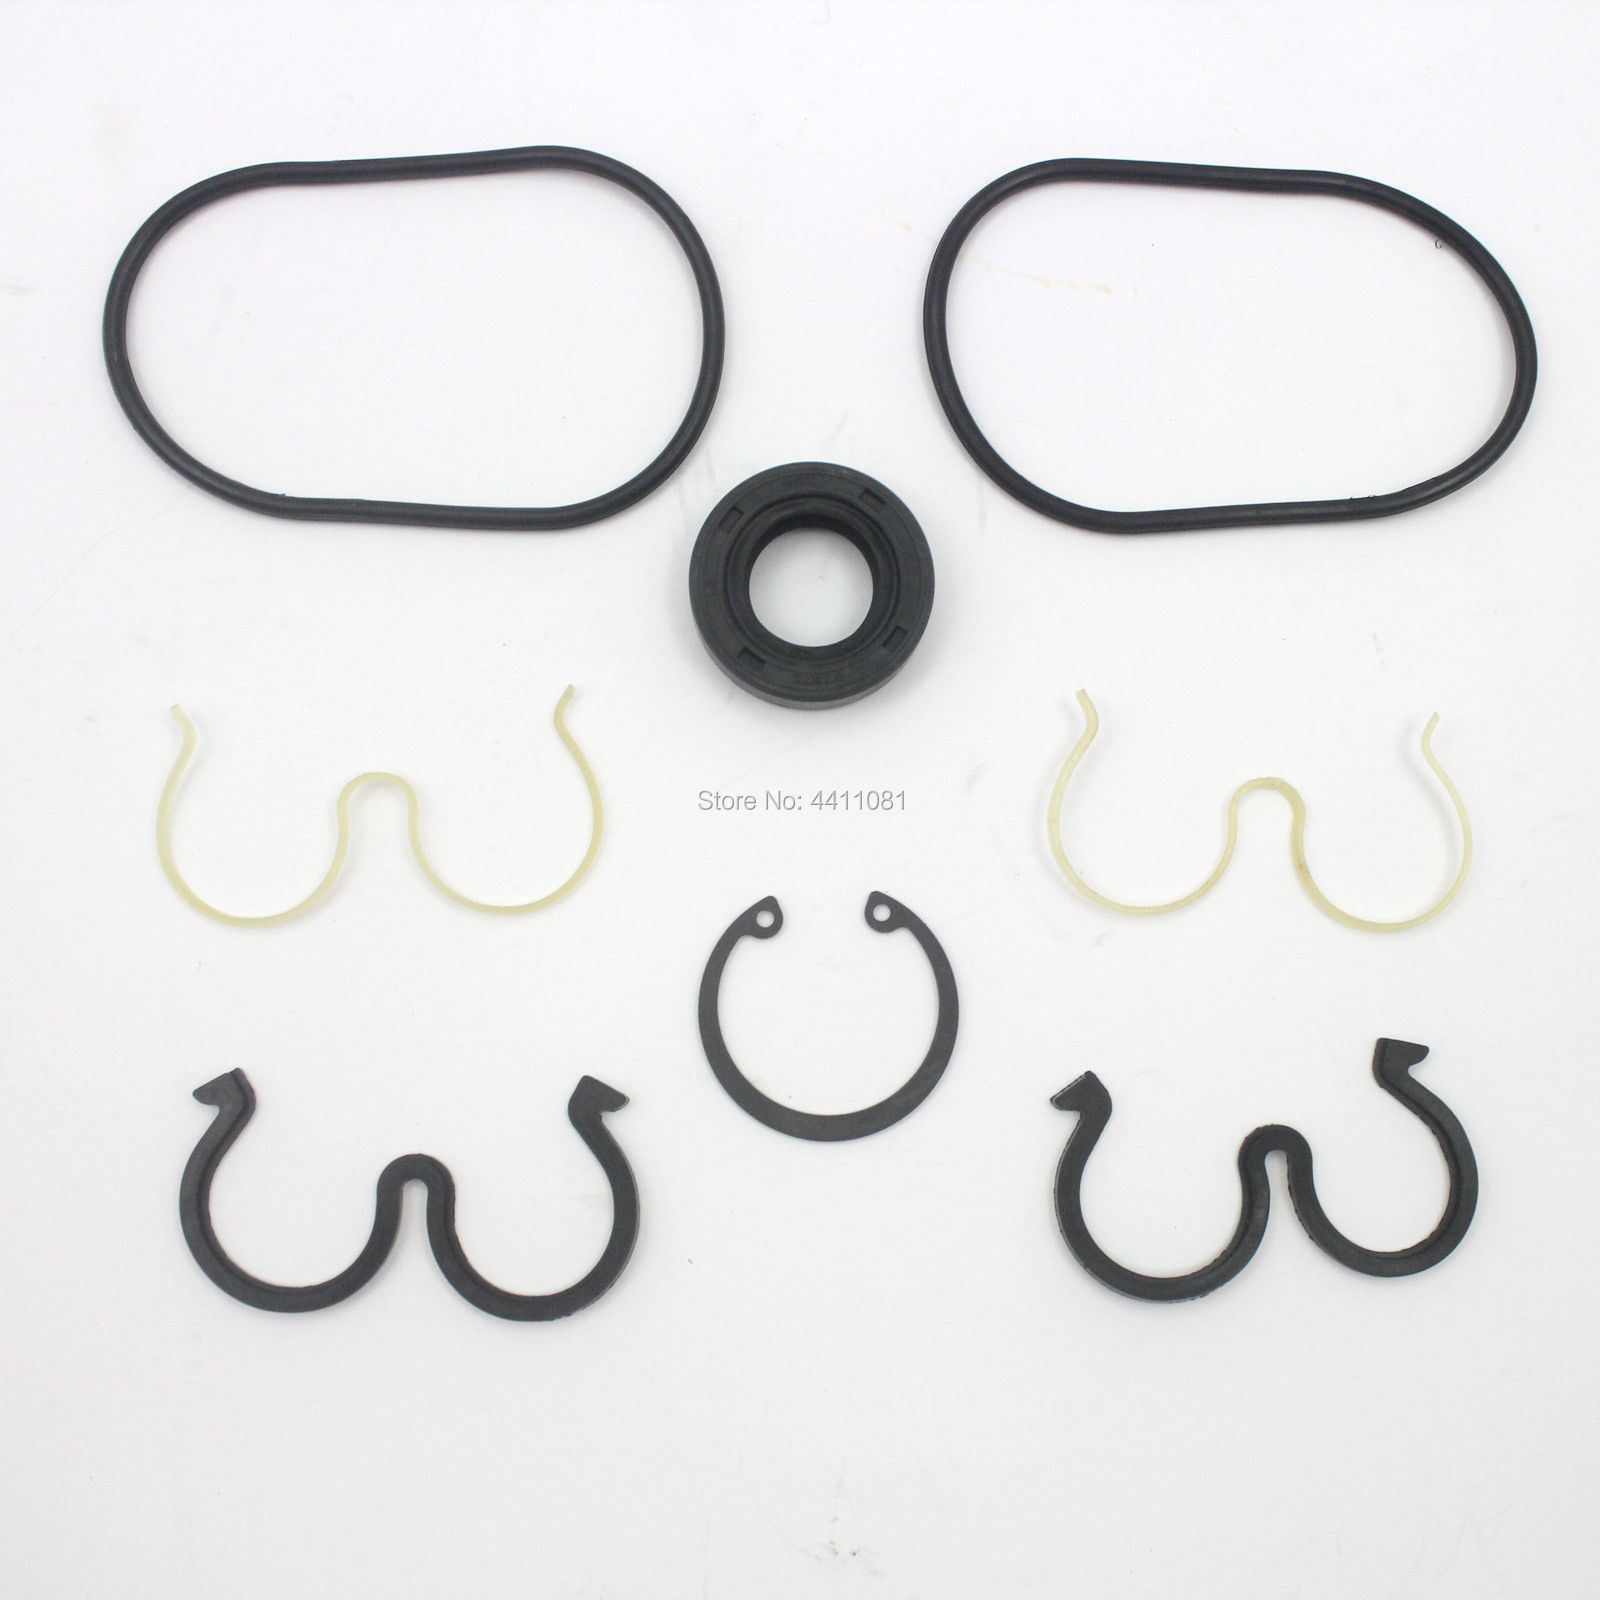 For Hitachi ZX200-2 Gear Pump Seal Repair Service Kit Excavator Oil Seals, 3 month warranty